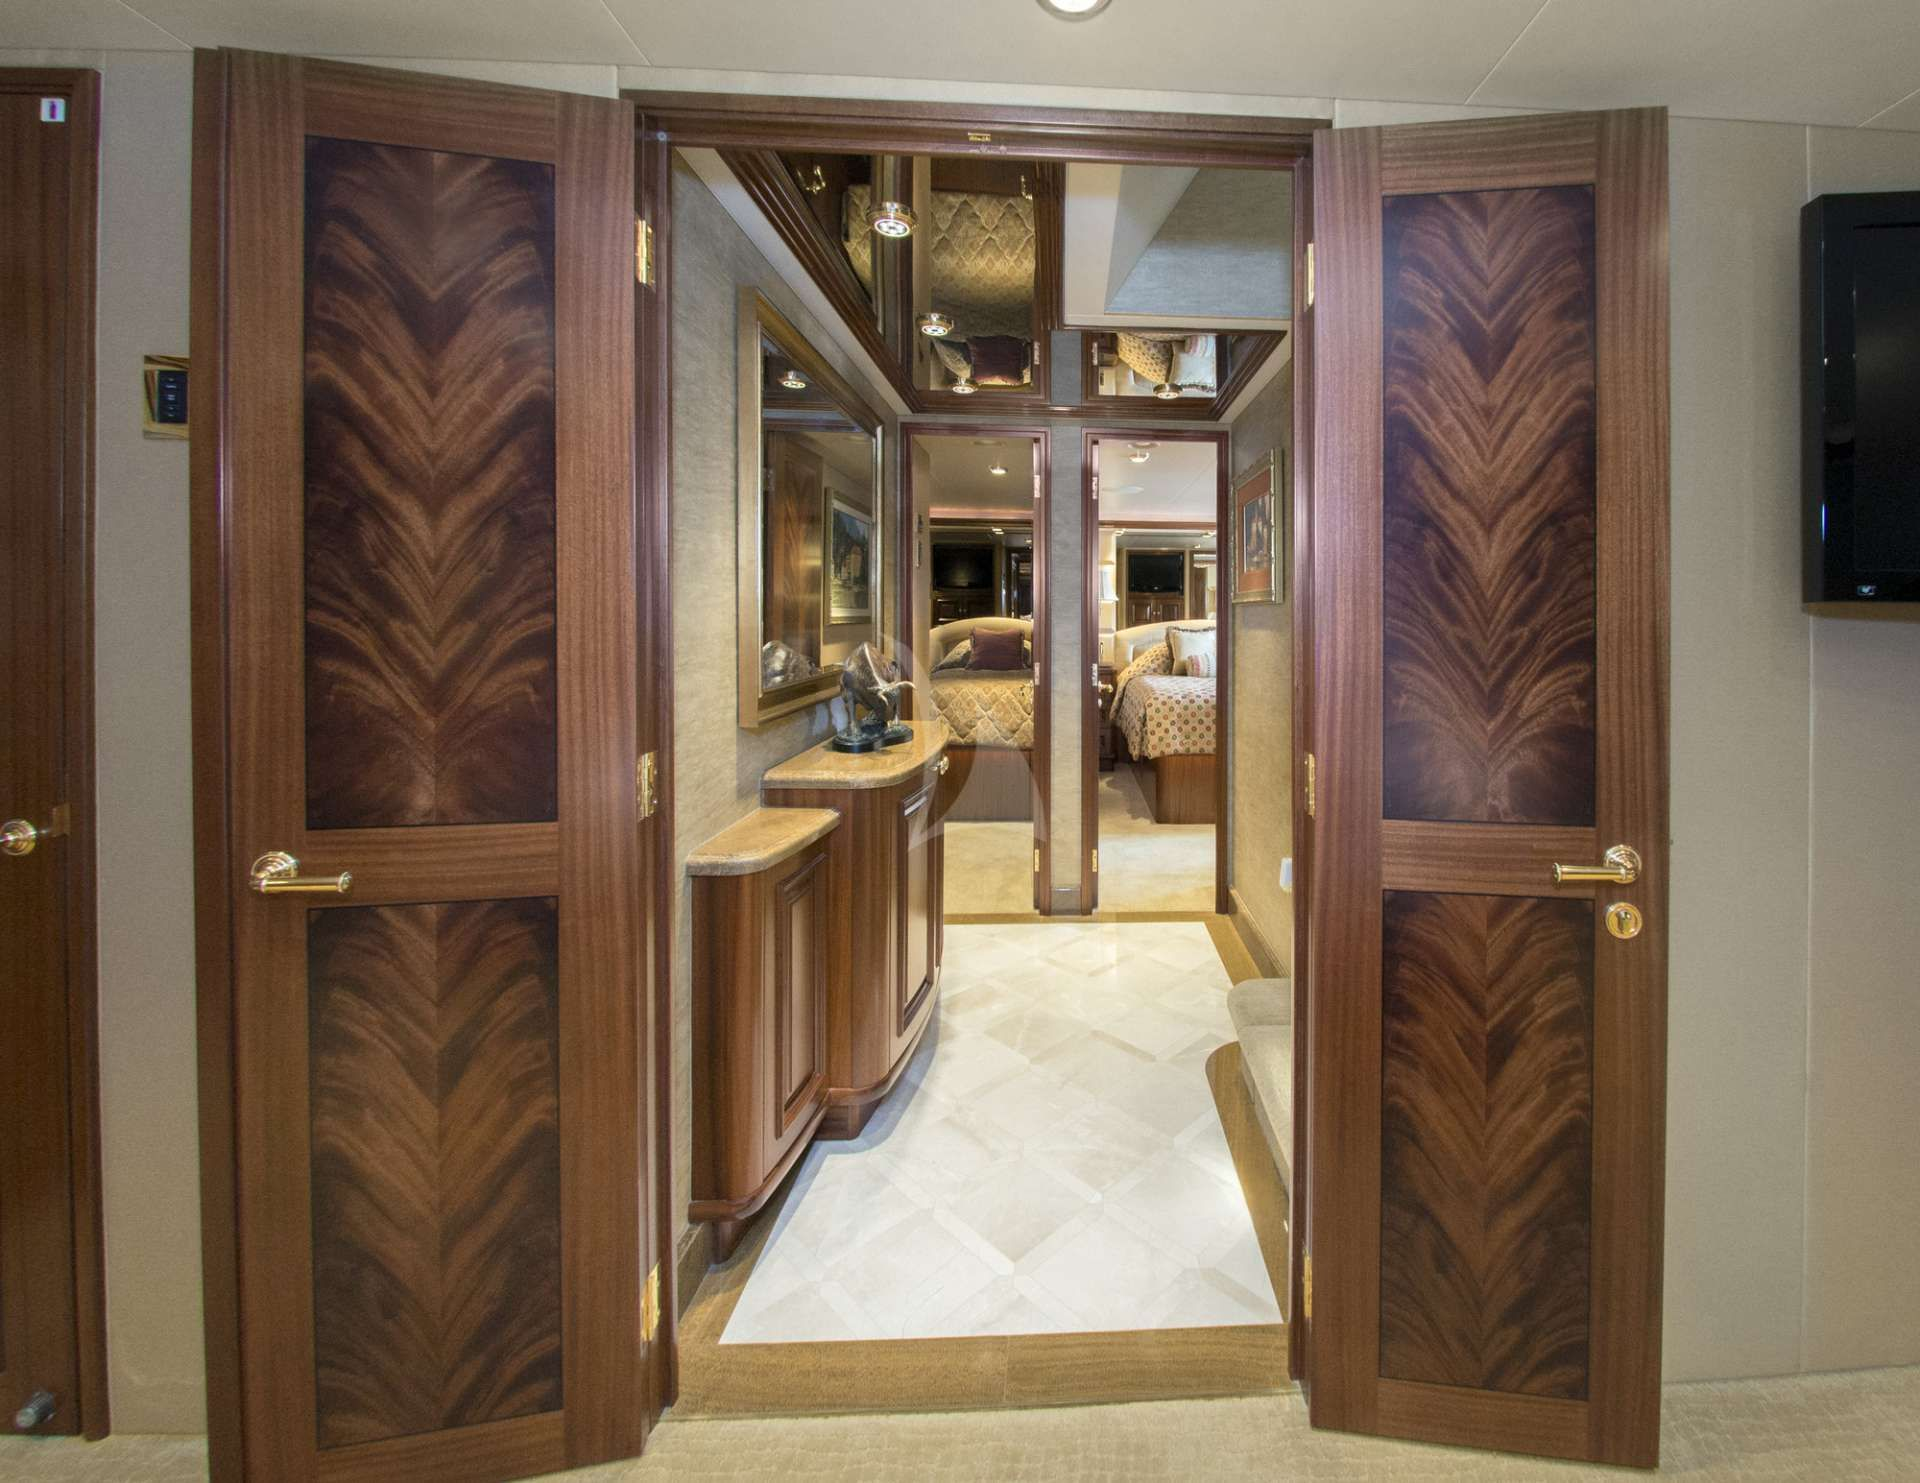 Foyer to Staterooms